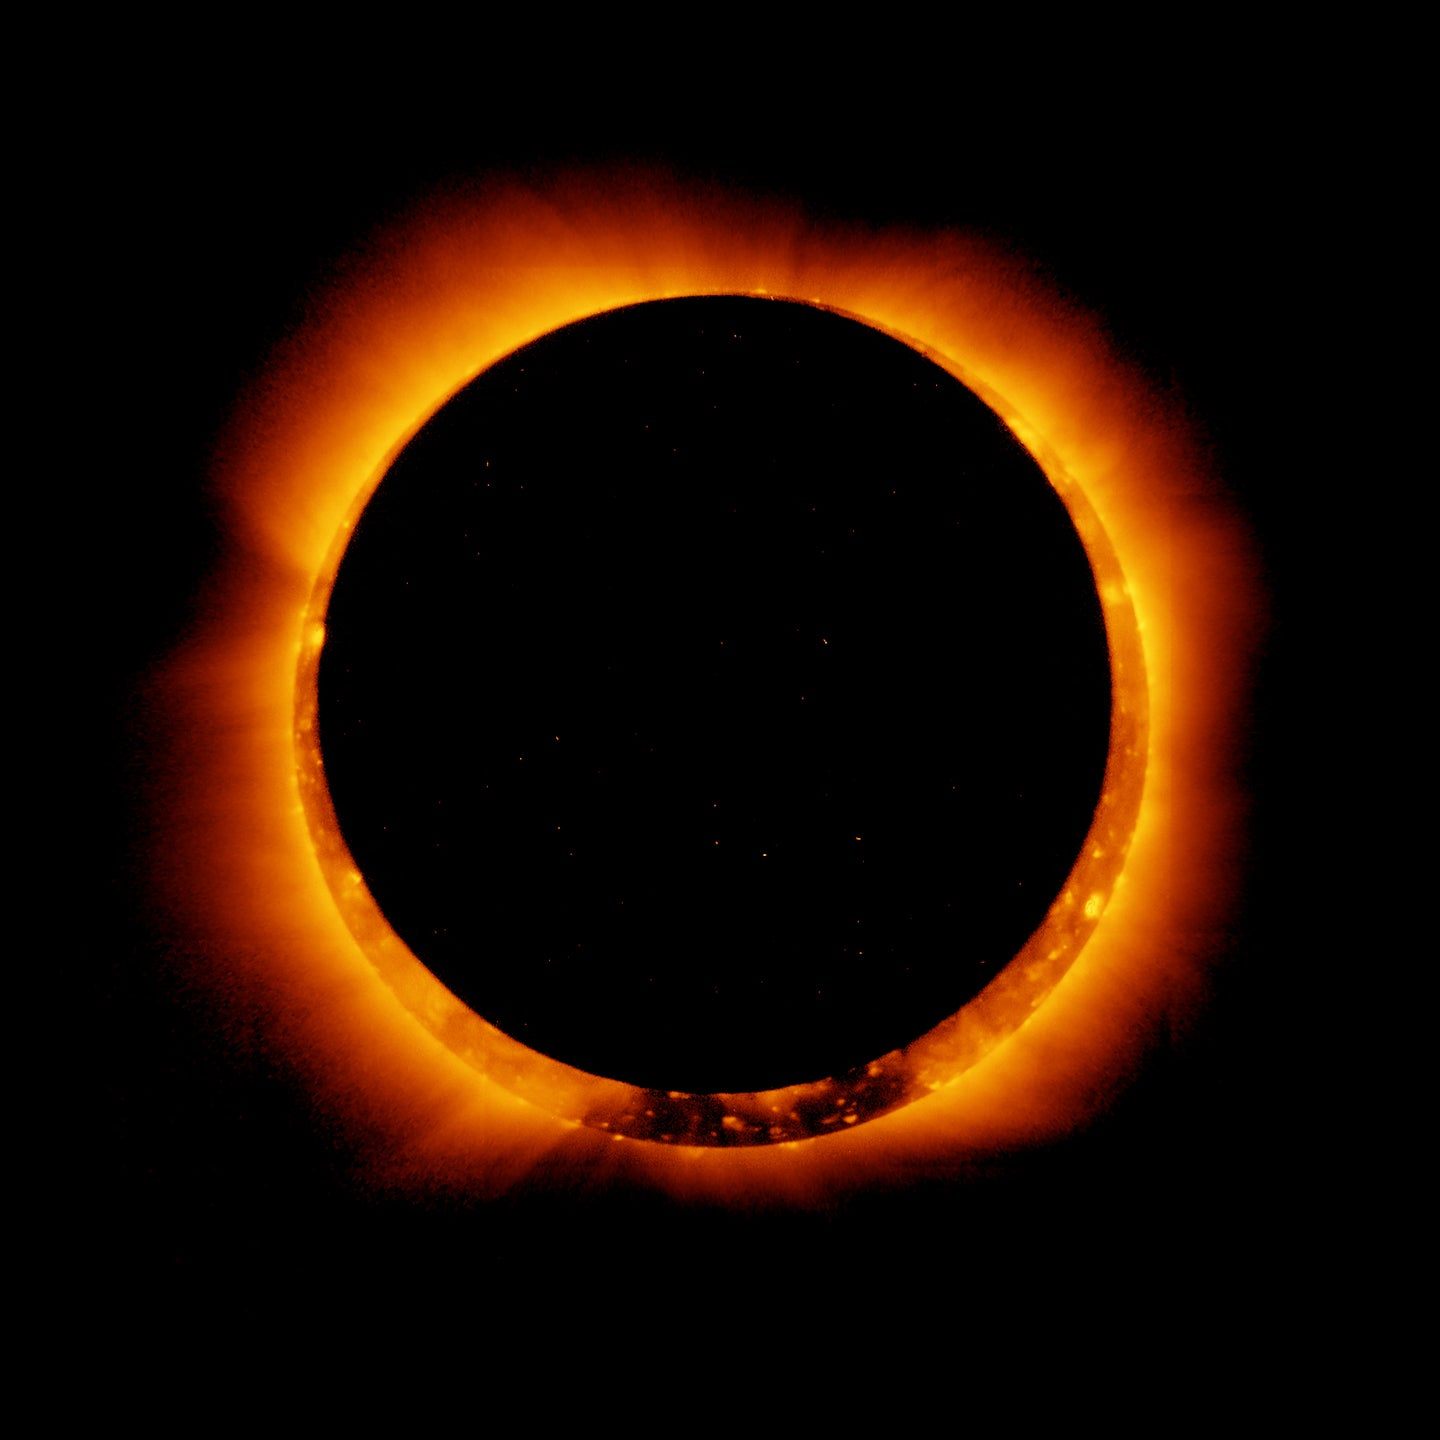 On January 4, 2011, the Hinode satellite captured these breathtaking images of an annular solar eclipse.